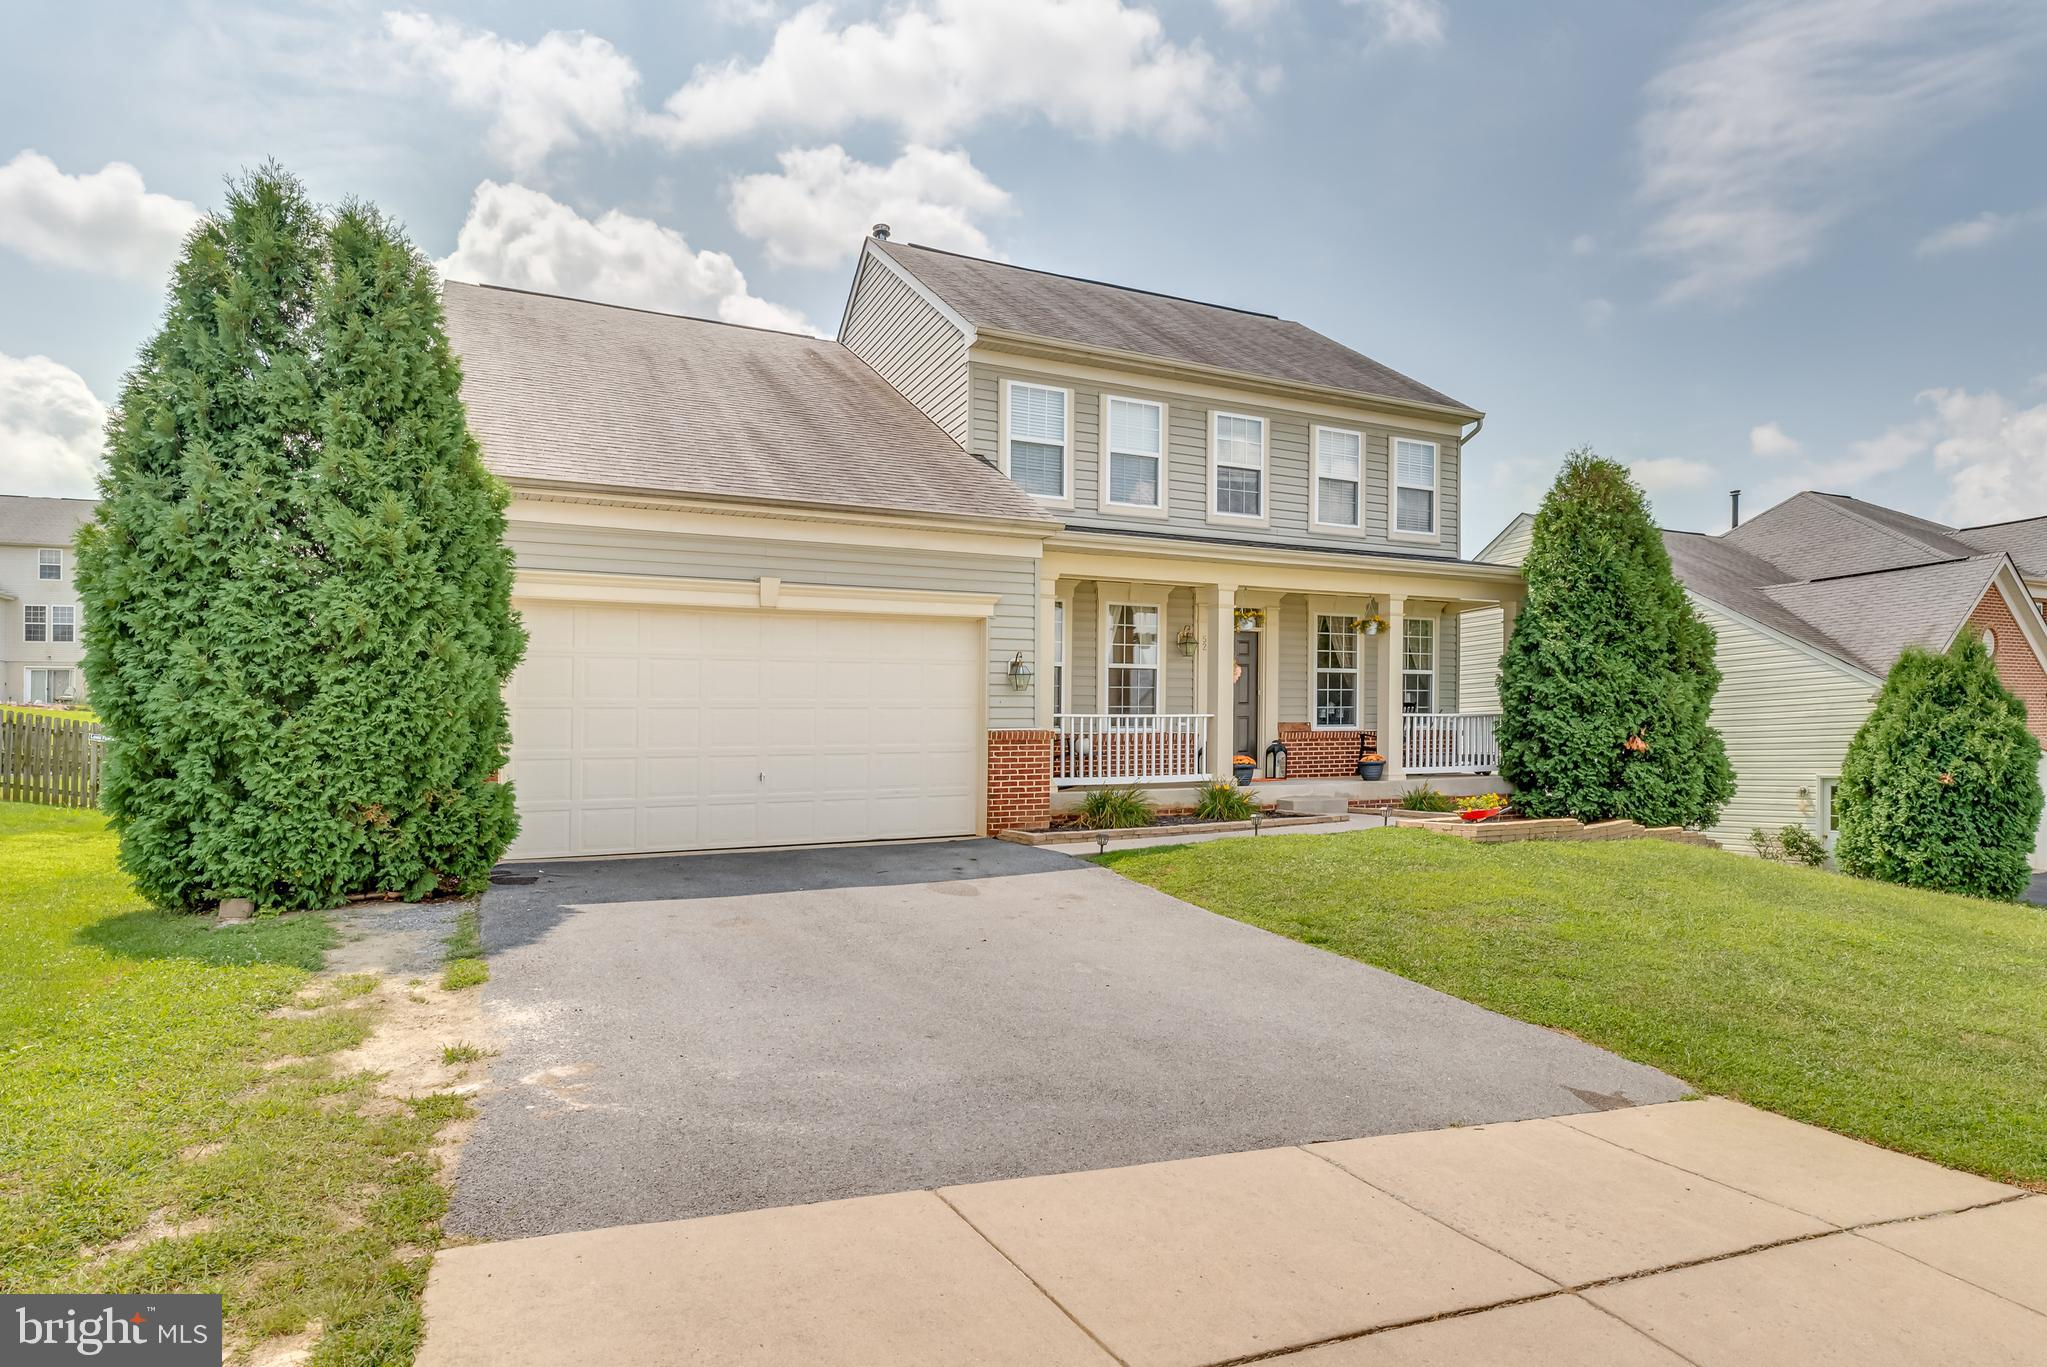 You don't want to miss this gorgeous 4 bedroom 2.5 bath colonial home situated in desirable Archer's